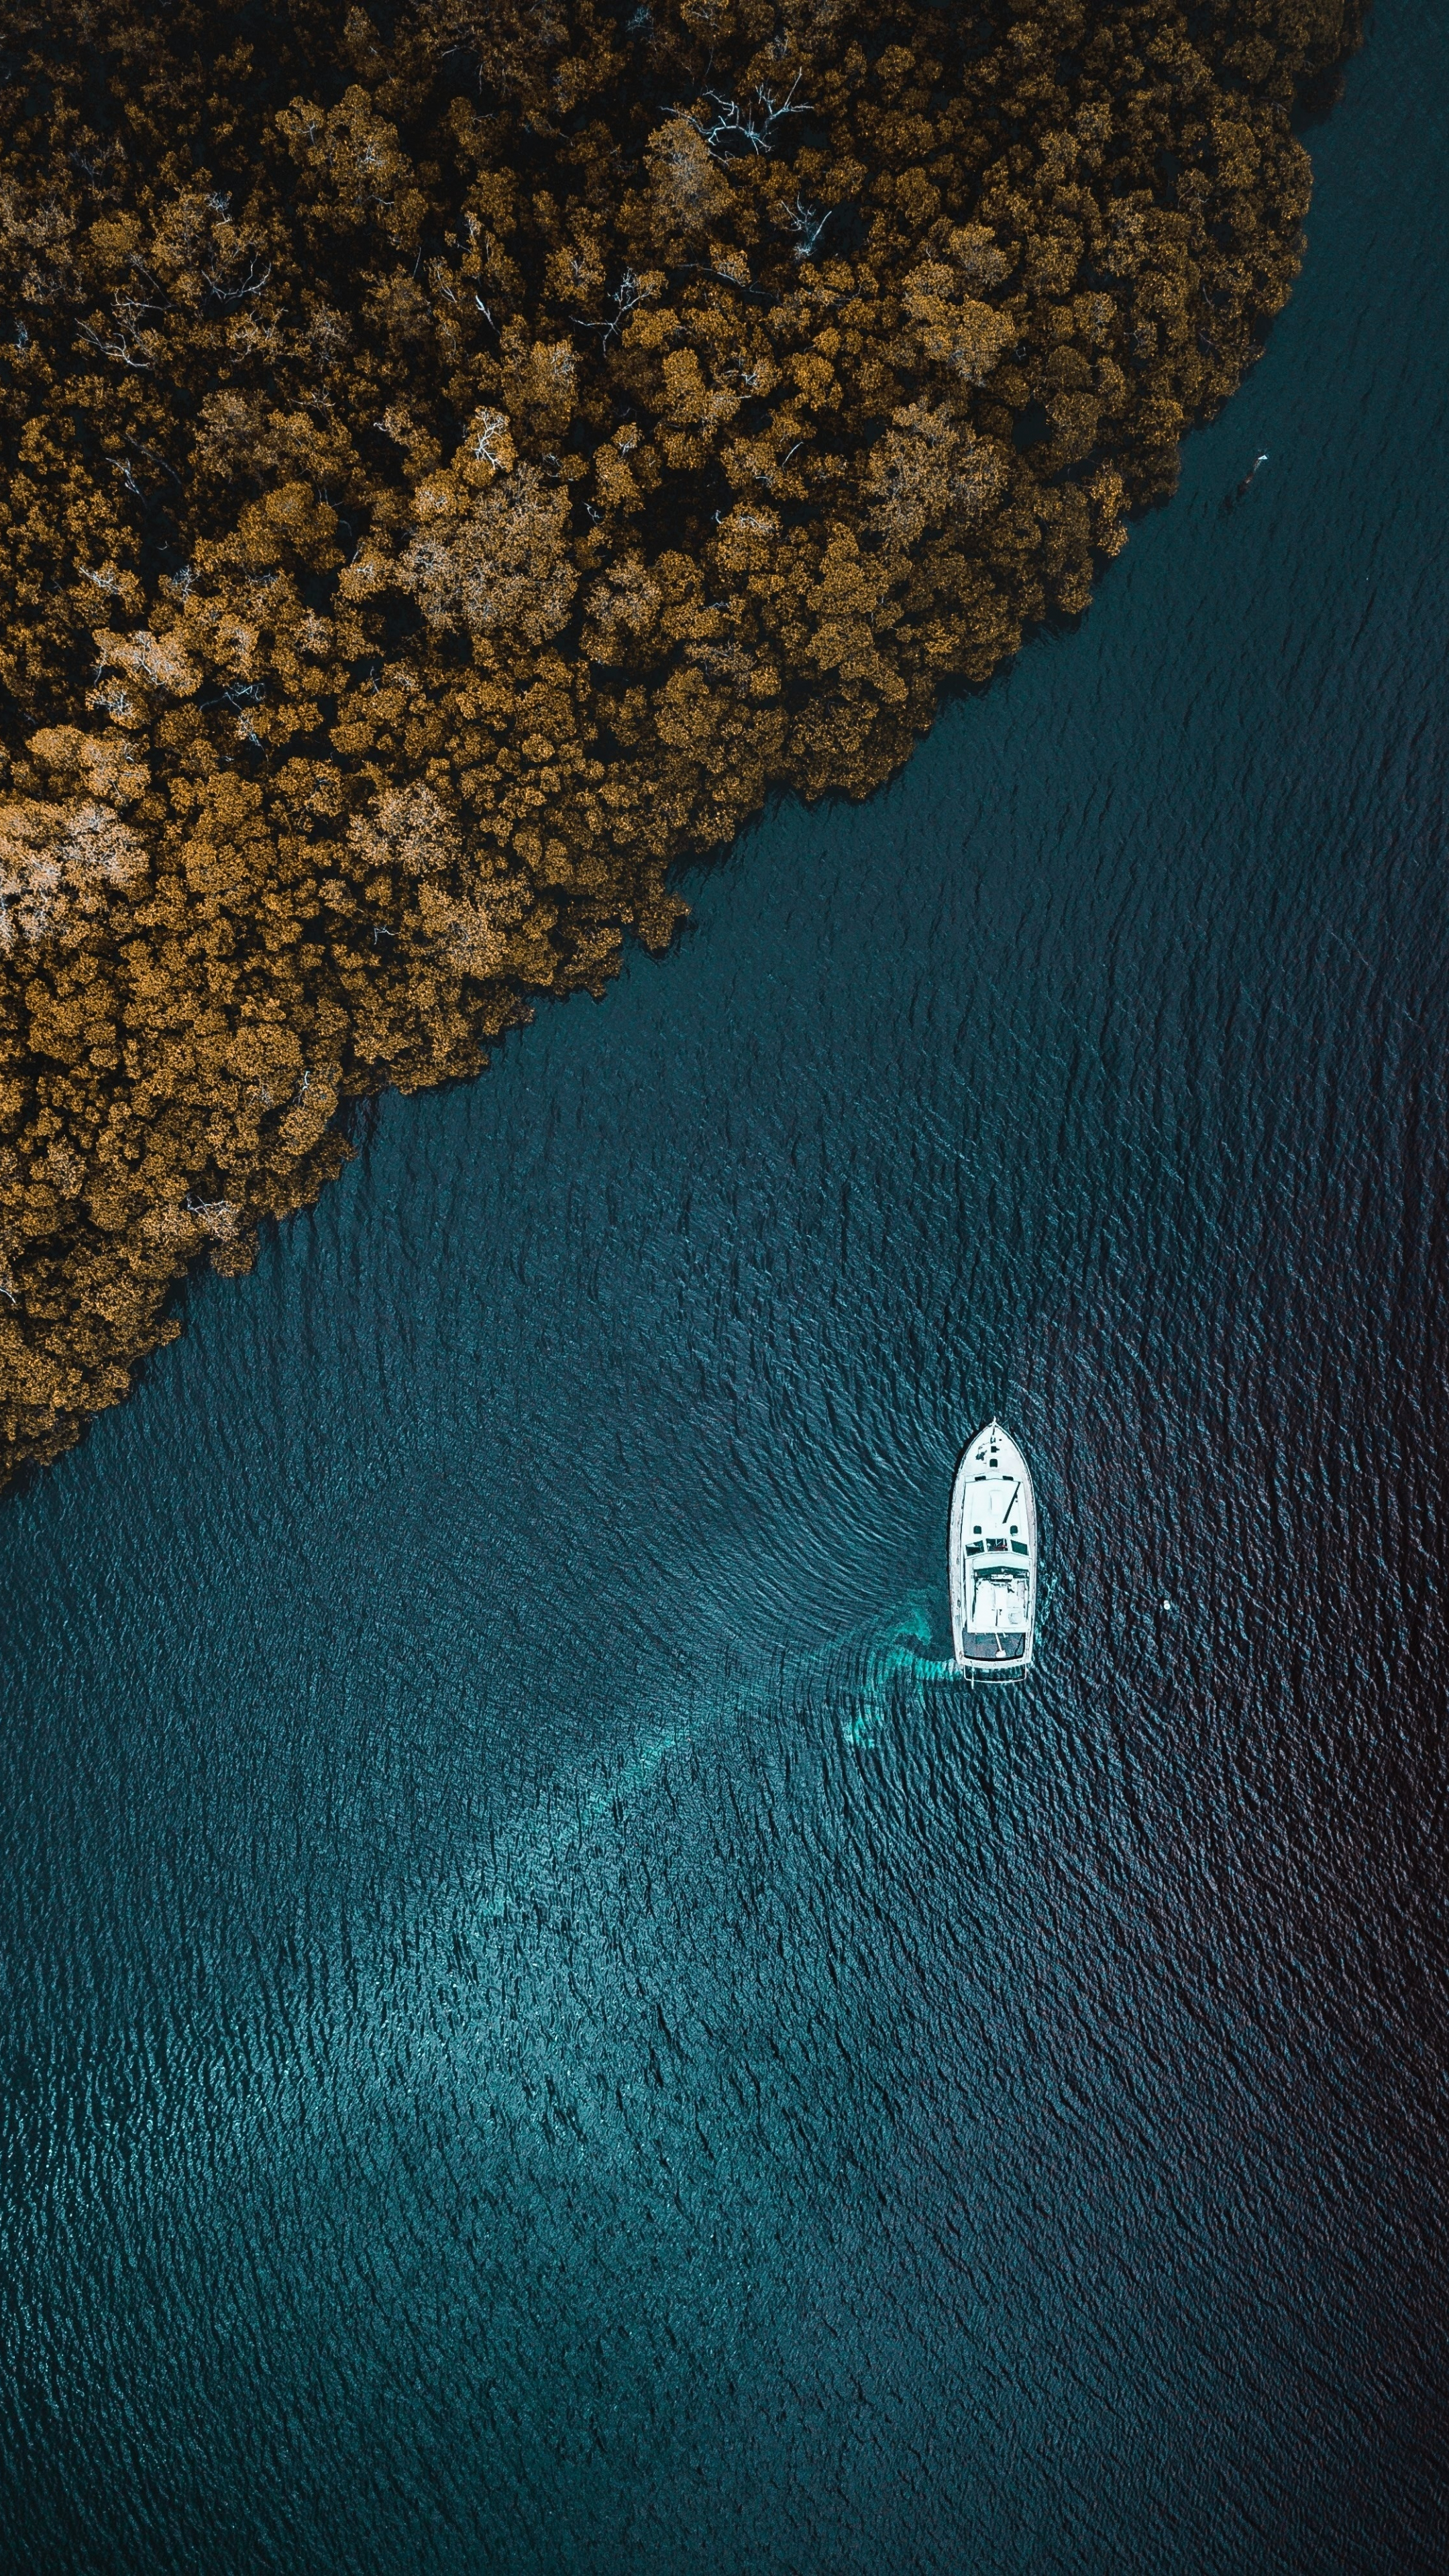 Aerial view, sea, forest, boat, 2160x3840 wallpaper